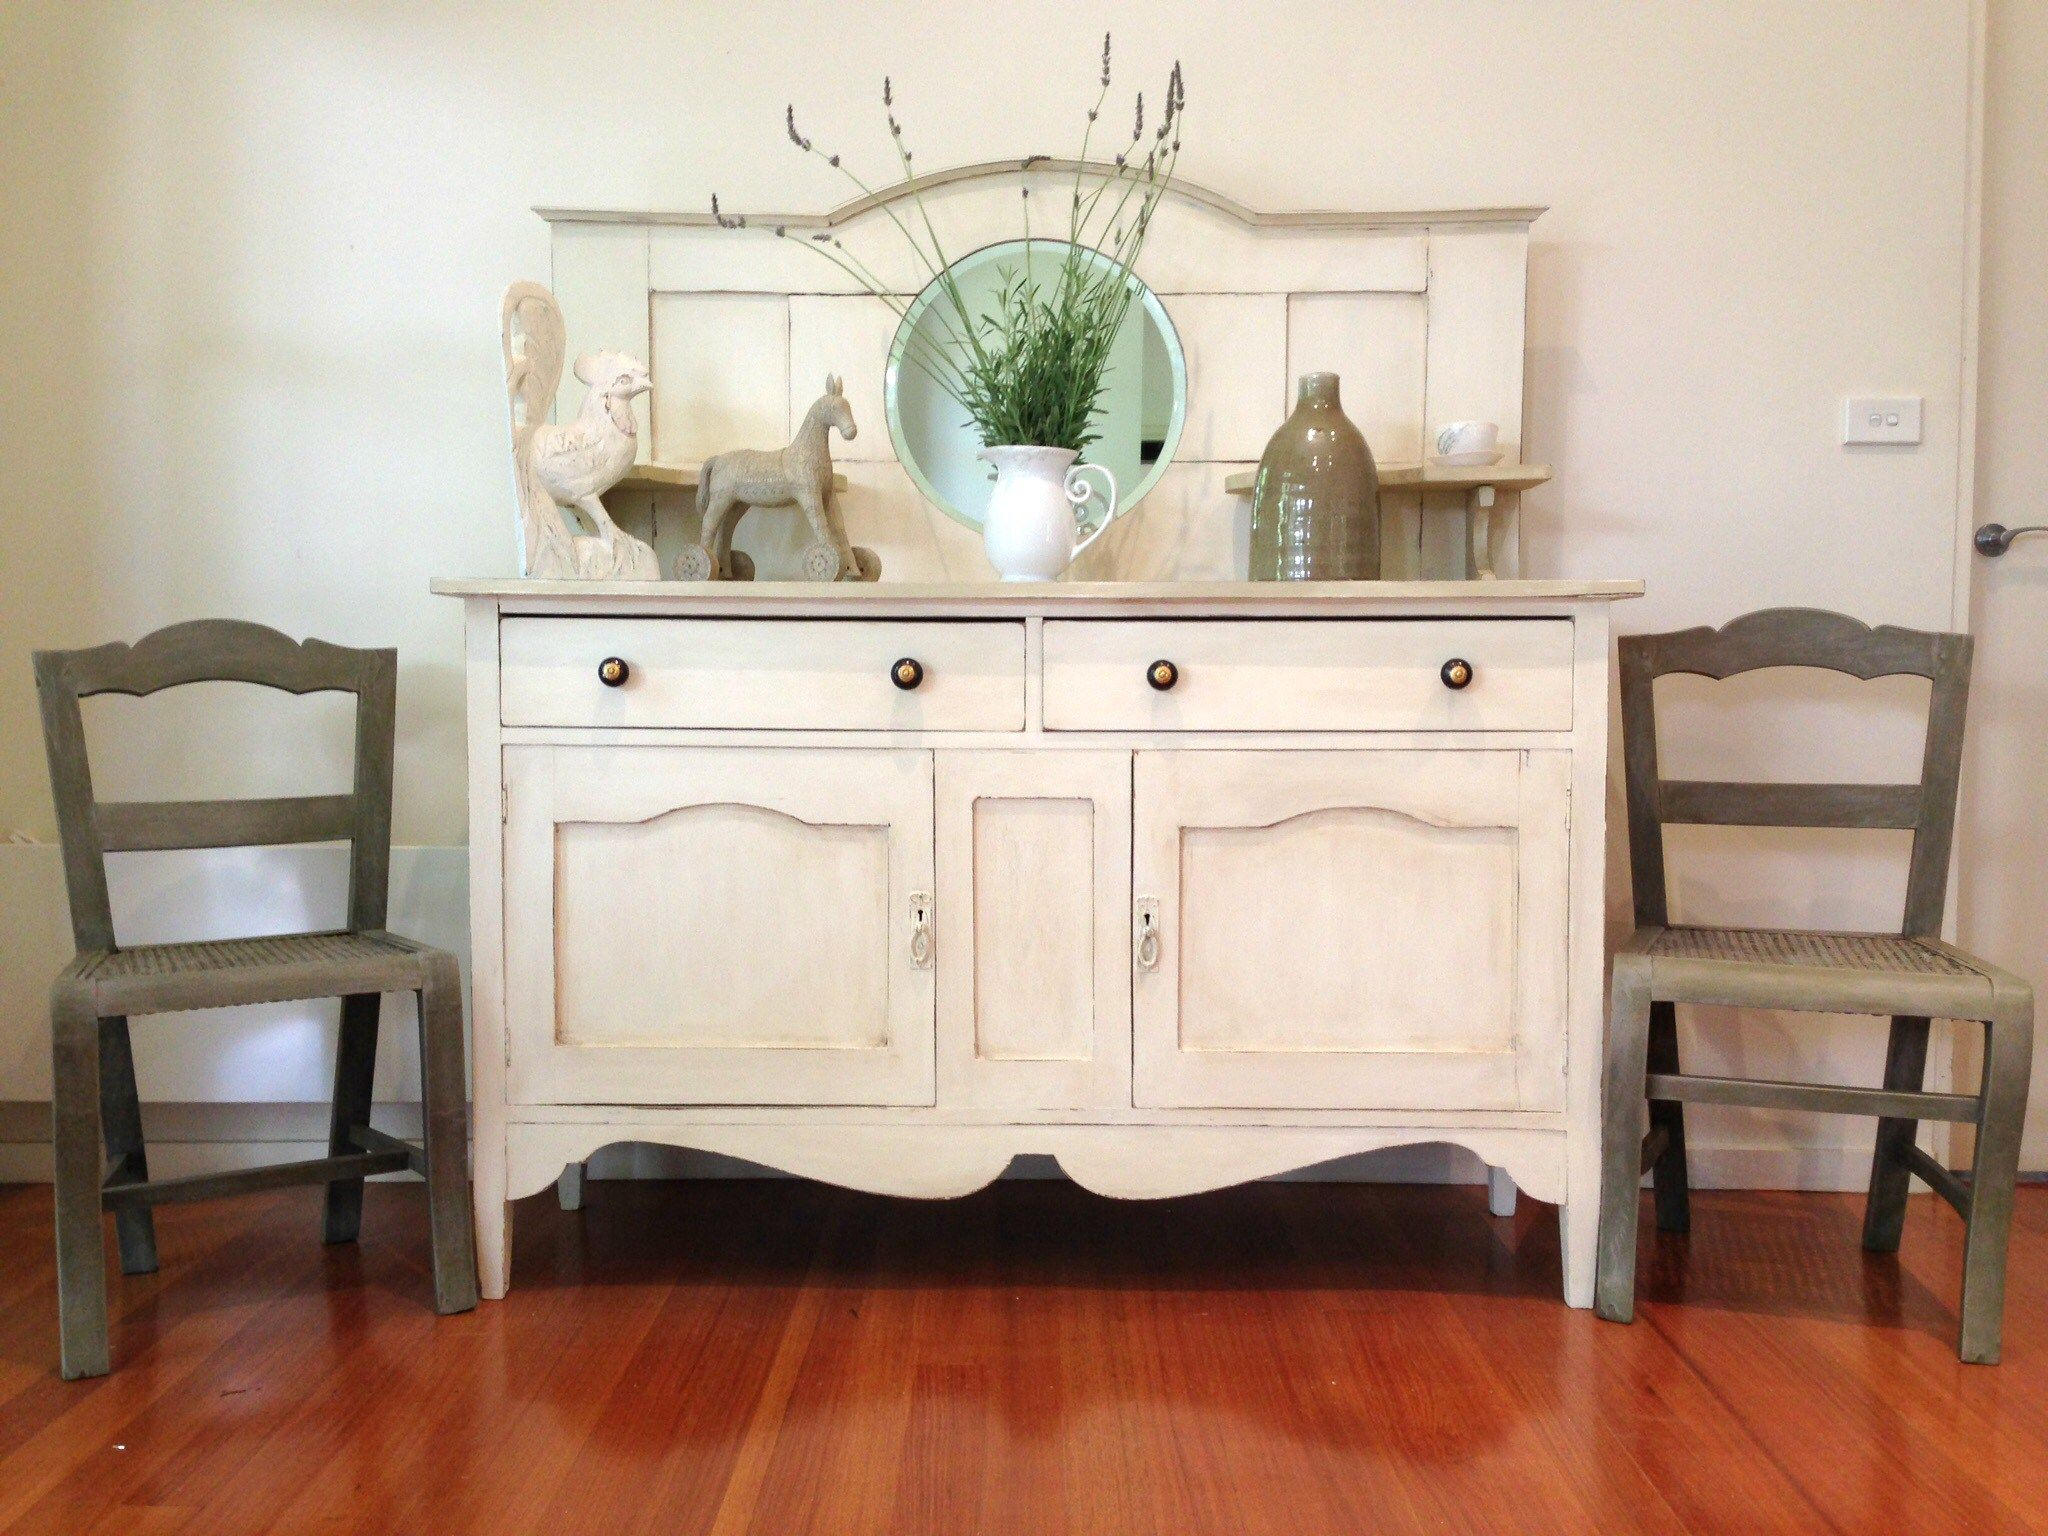 Antique sideboard makeover in Chalk Paint   by Rusty Blue Refashioned  Furniture. Antique sideboard makeover with Chalk Paint   by Rusty Blue